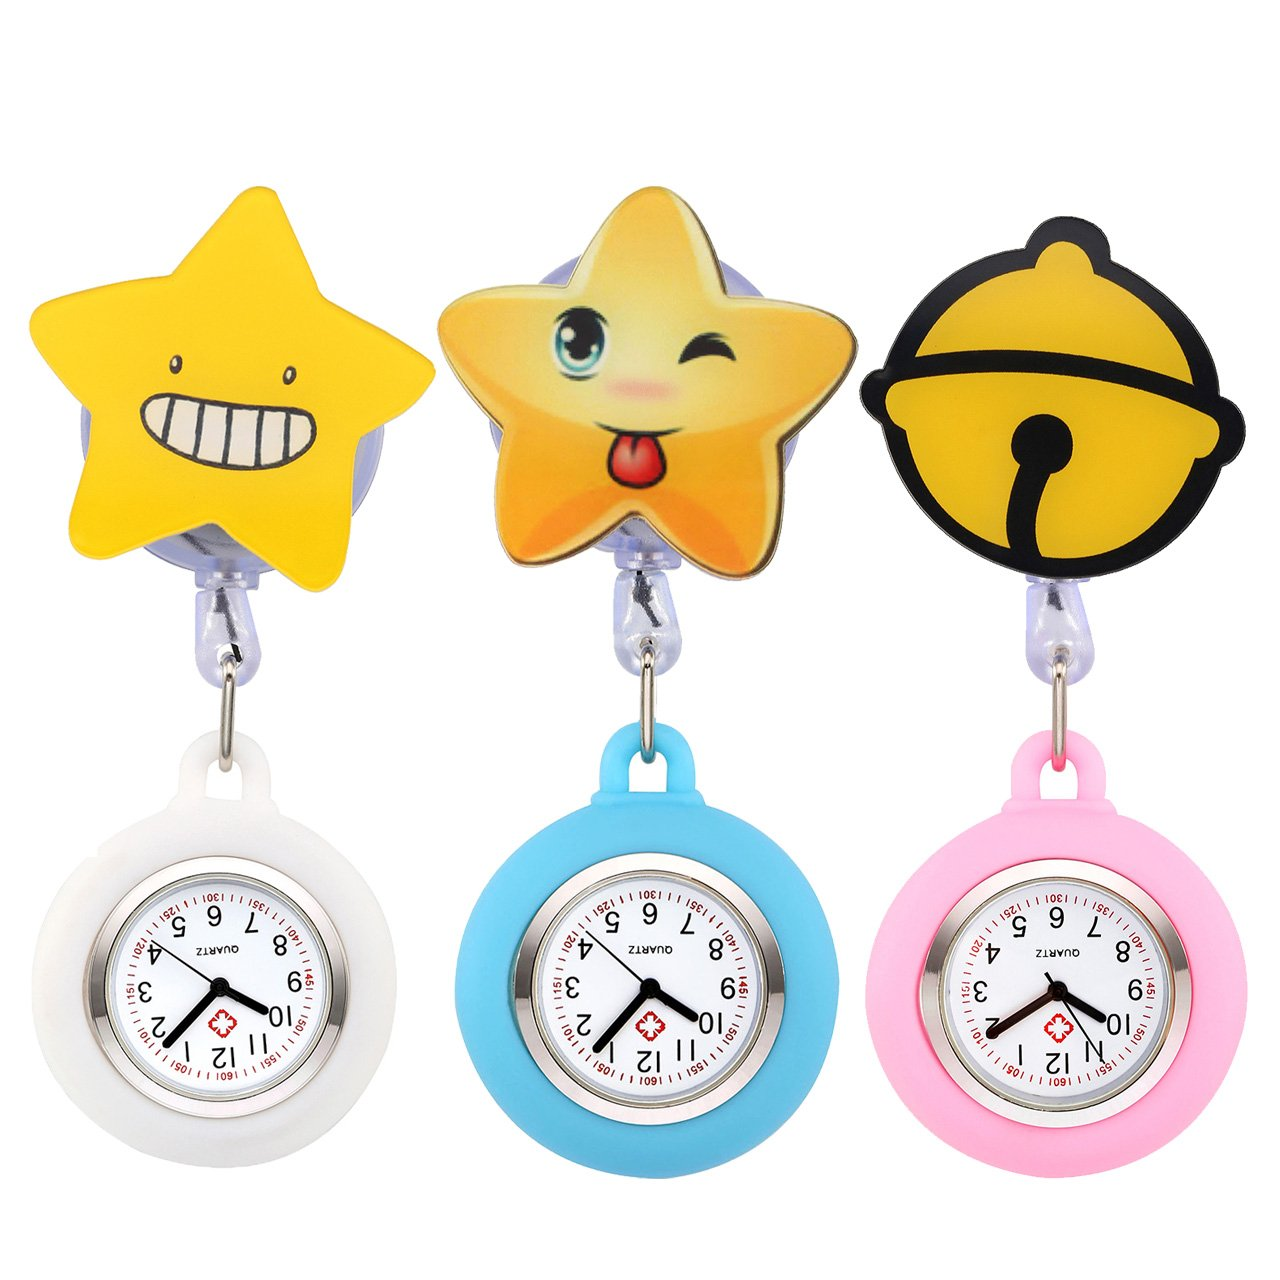 Top Plaza 3 Pcs Girls' Kid's Cute Lovely Cartoon Pattern Silicone Nurse Clip-on Fob Brooch Hanging Easy Pull Clasp Stretch Analog Quartz Pocket Watches #1